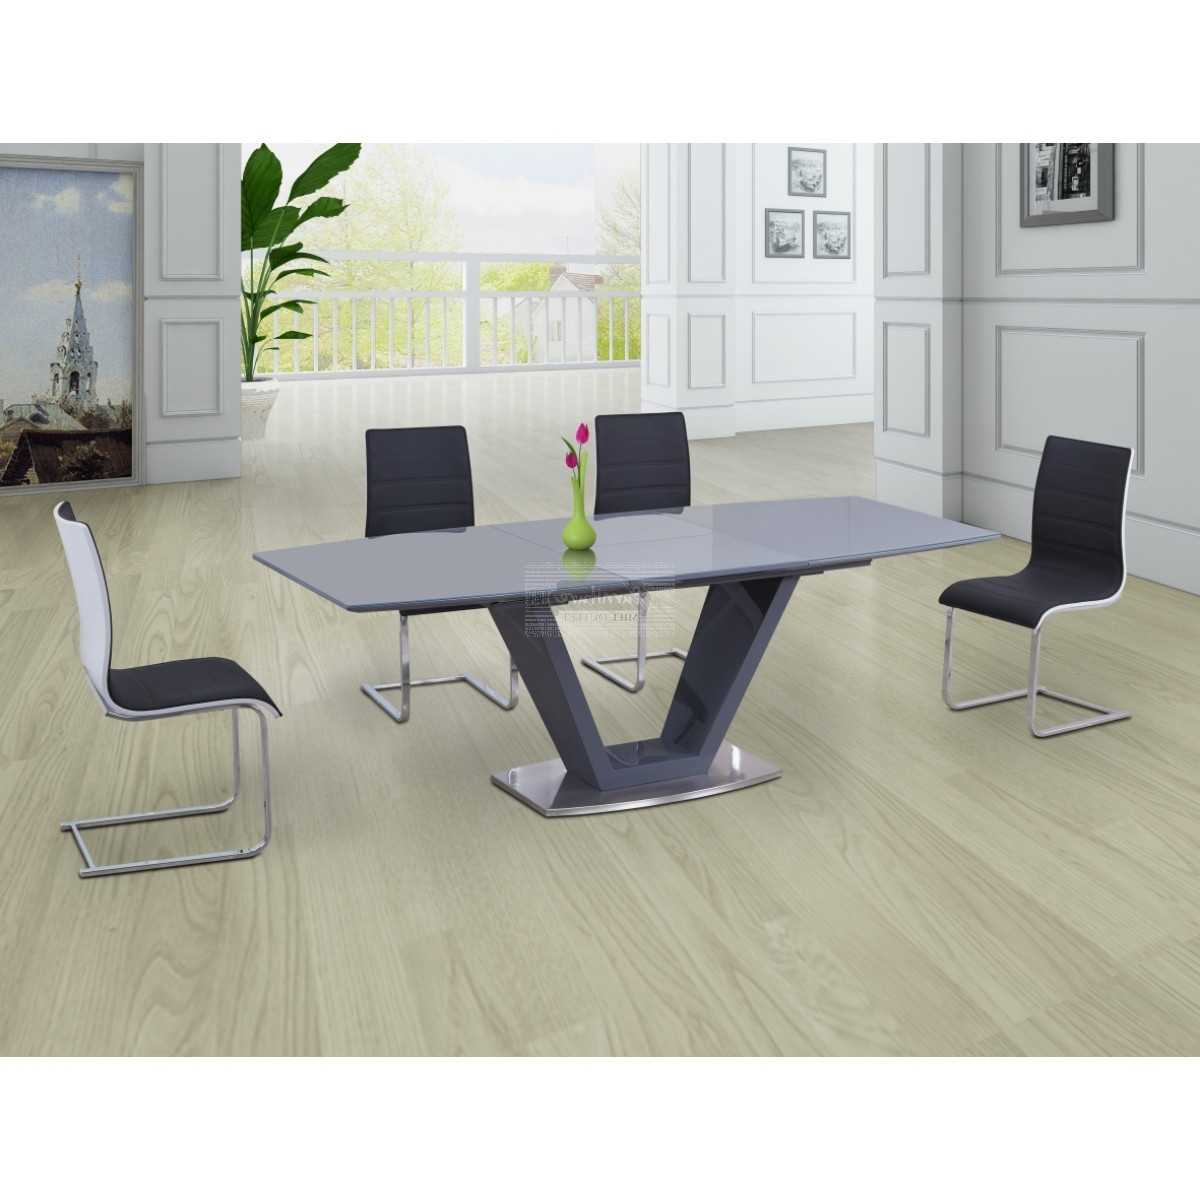 High Gloss White Extending Dining Tables Inside Well Known Lorgato Grey High Gloss Extending Dining Table – 160Cm To 220Cm (View 22 of 25)